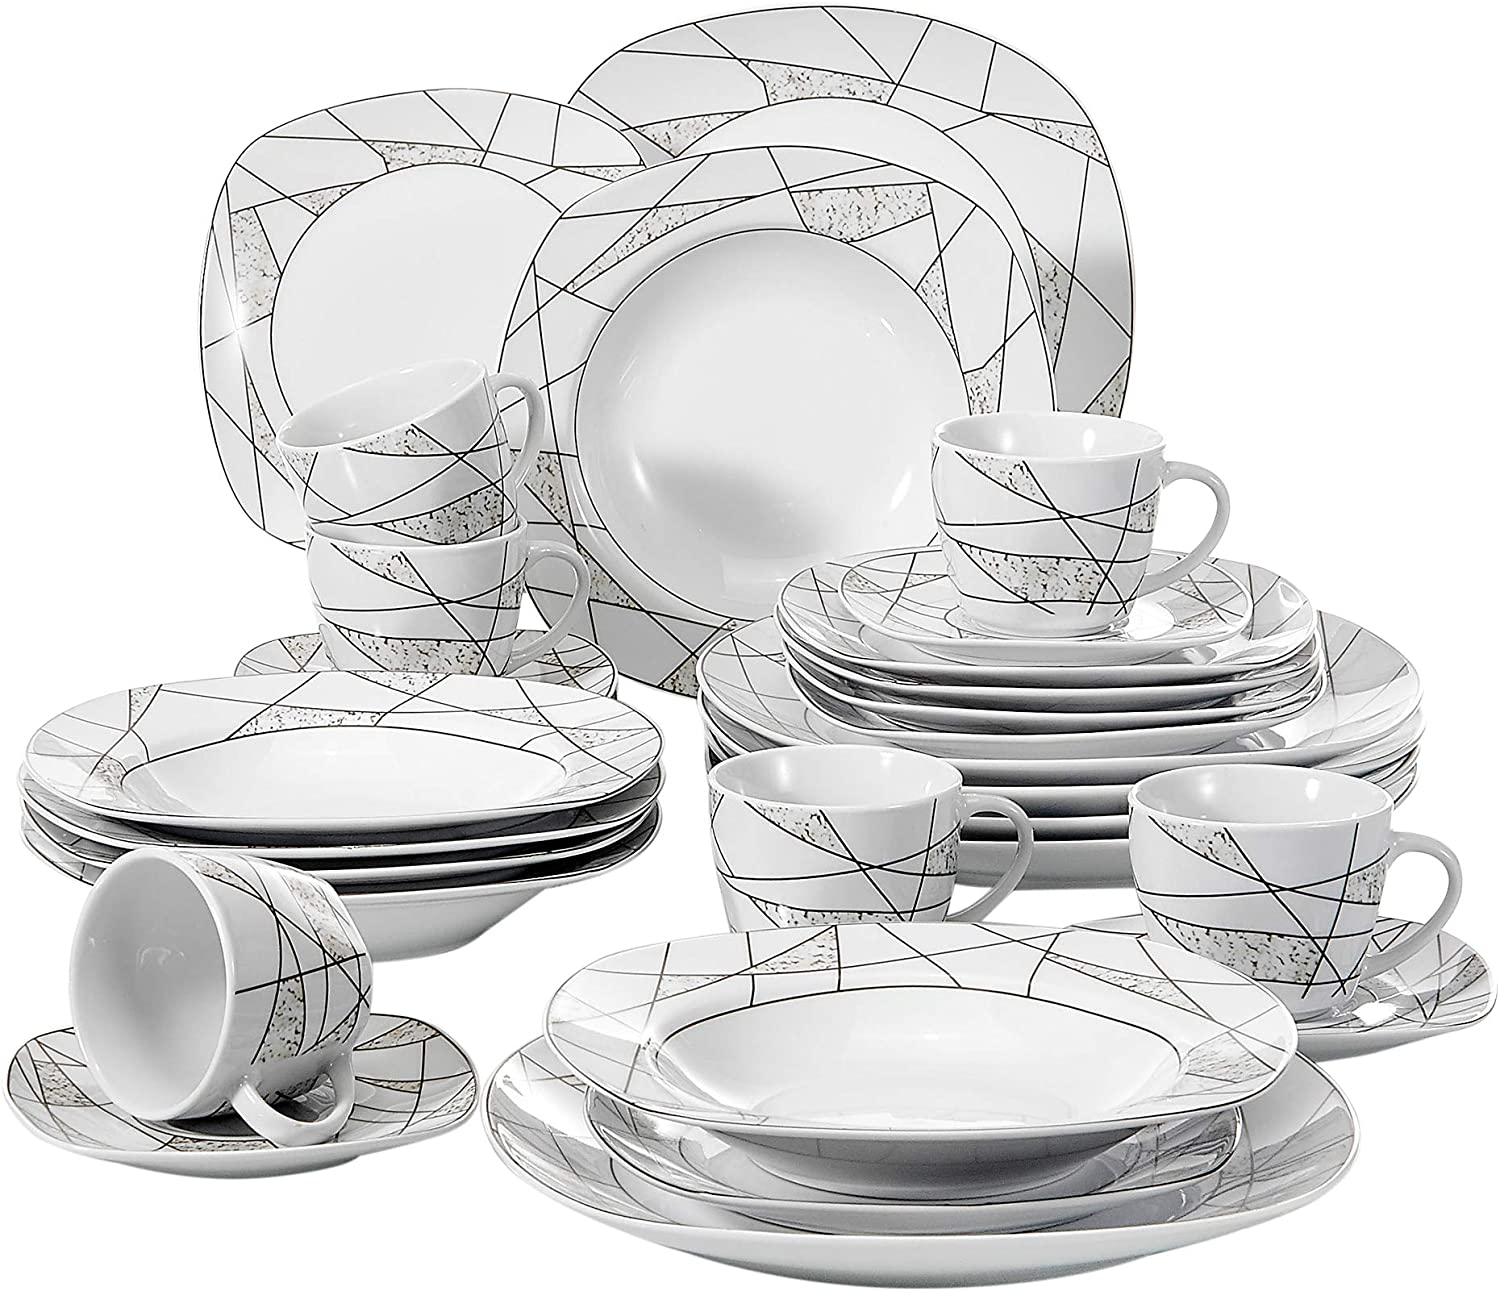 VEWEET 30-Piece Porcelain Dinnerware Set Ivory White Irregular Patterns Kitchen Plate Sets with Dinner Plate, Soup Plate, Dessert Plate, Saucer and Mug, Service for 6 (SERENA Series)